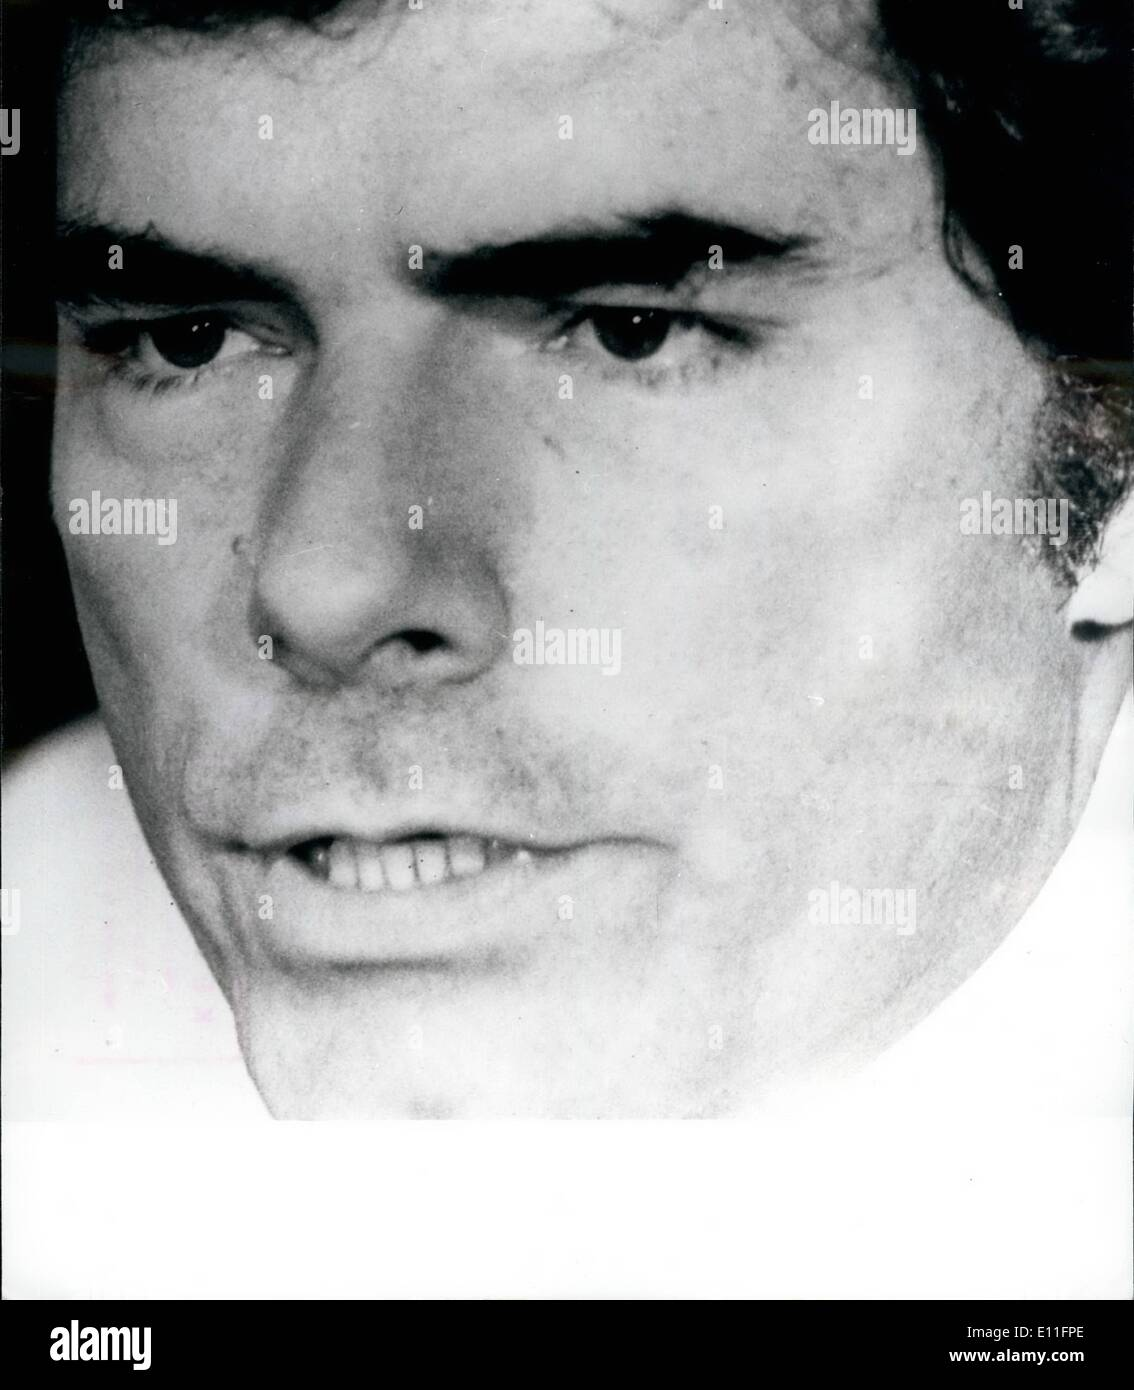 Aug. 08, 1977 - Phillip Agee expelled from France.: Phillip Agee the former CIA agent deported from Britain has now been expelled from France. he told a press conference in Brussels that his exclusion from France was probably due to CIA pressure to help stop him making further exposures about the agency, Mr Agee was arrested on Wednesday last when he met his wife Angela at Boulogne as she arrived from Britain. he said he was held for 15 hours before being driven to the French border town of Little on Thursday and told to board a train to Belgium - Stock Image